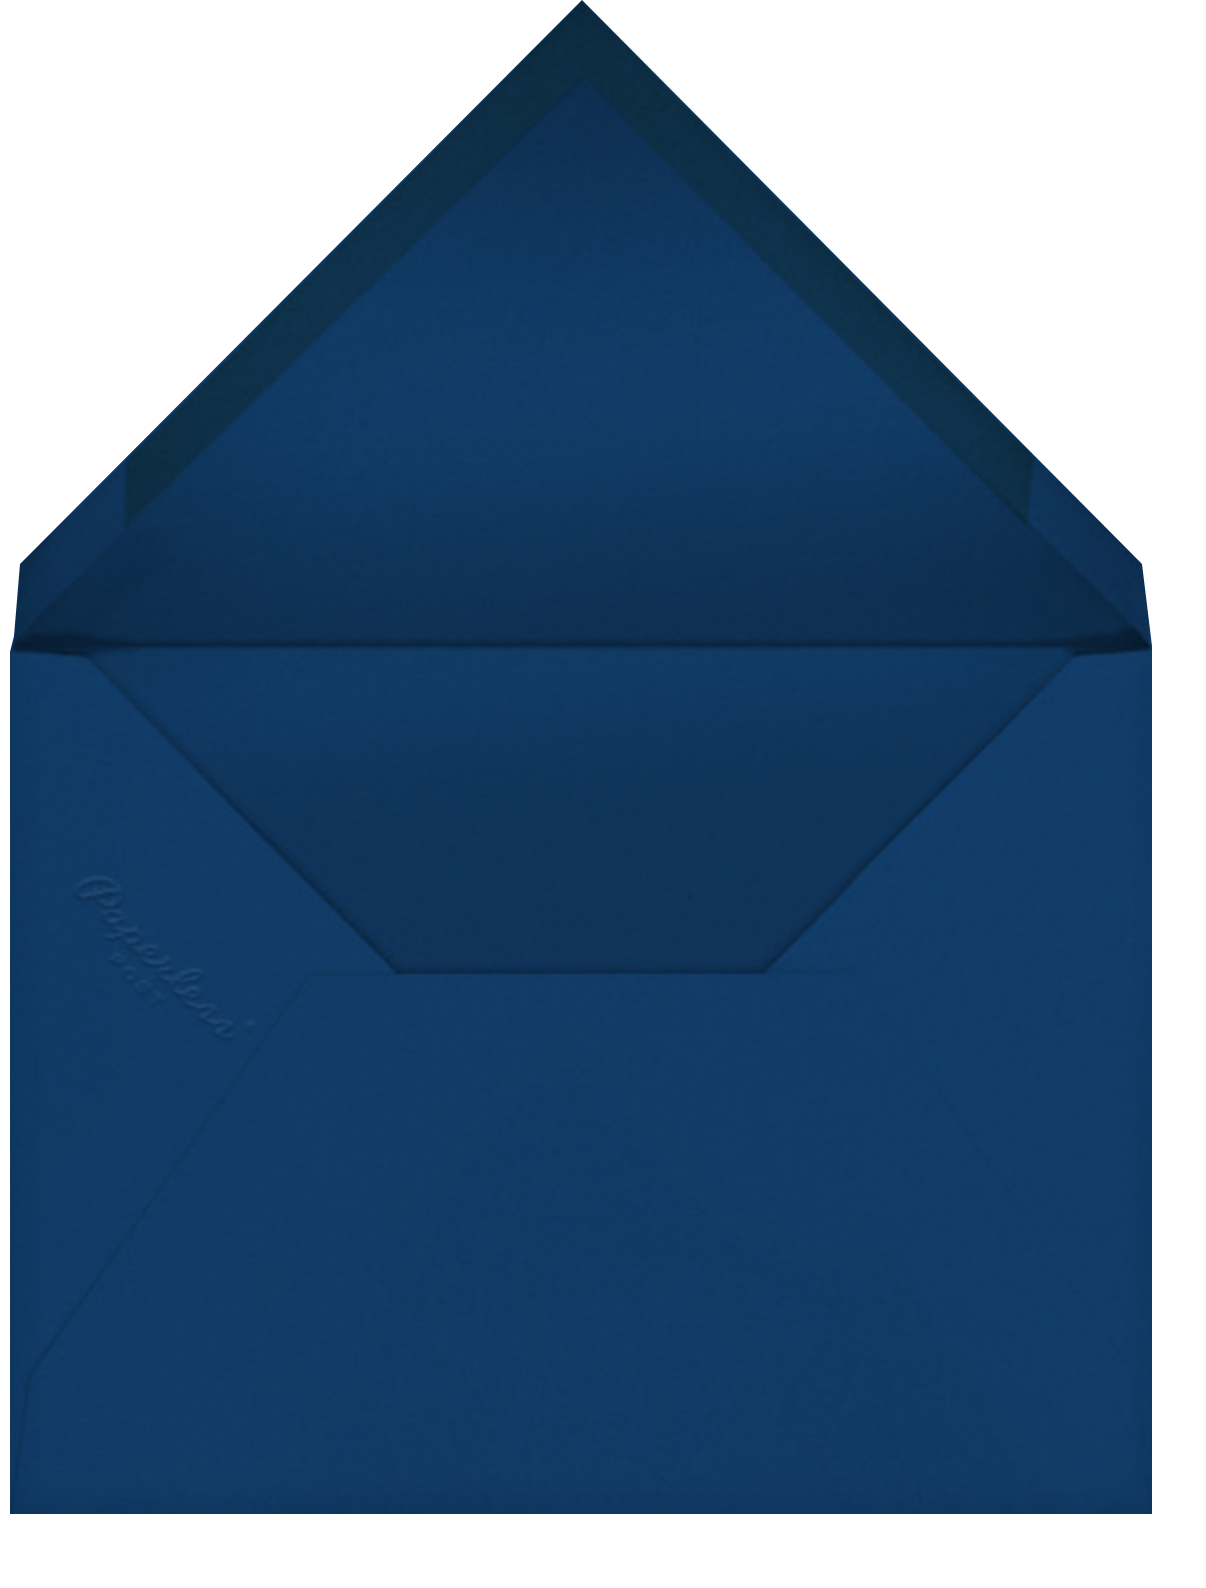 Top Down Chrome Spinning - Paperless Post - Moving - envelope back